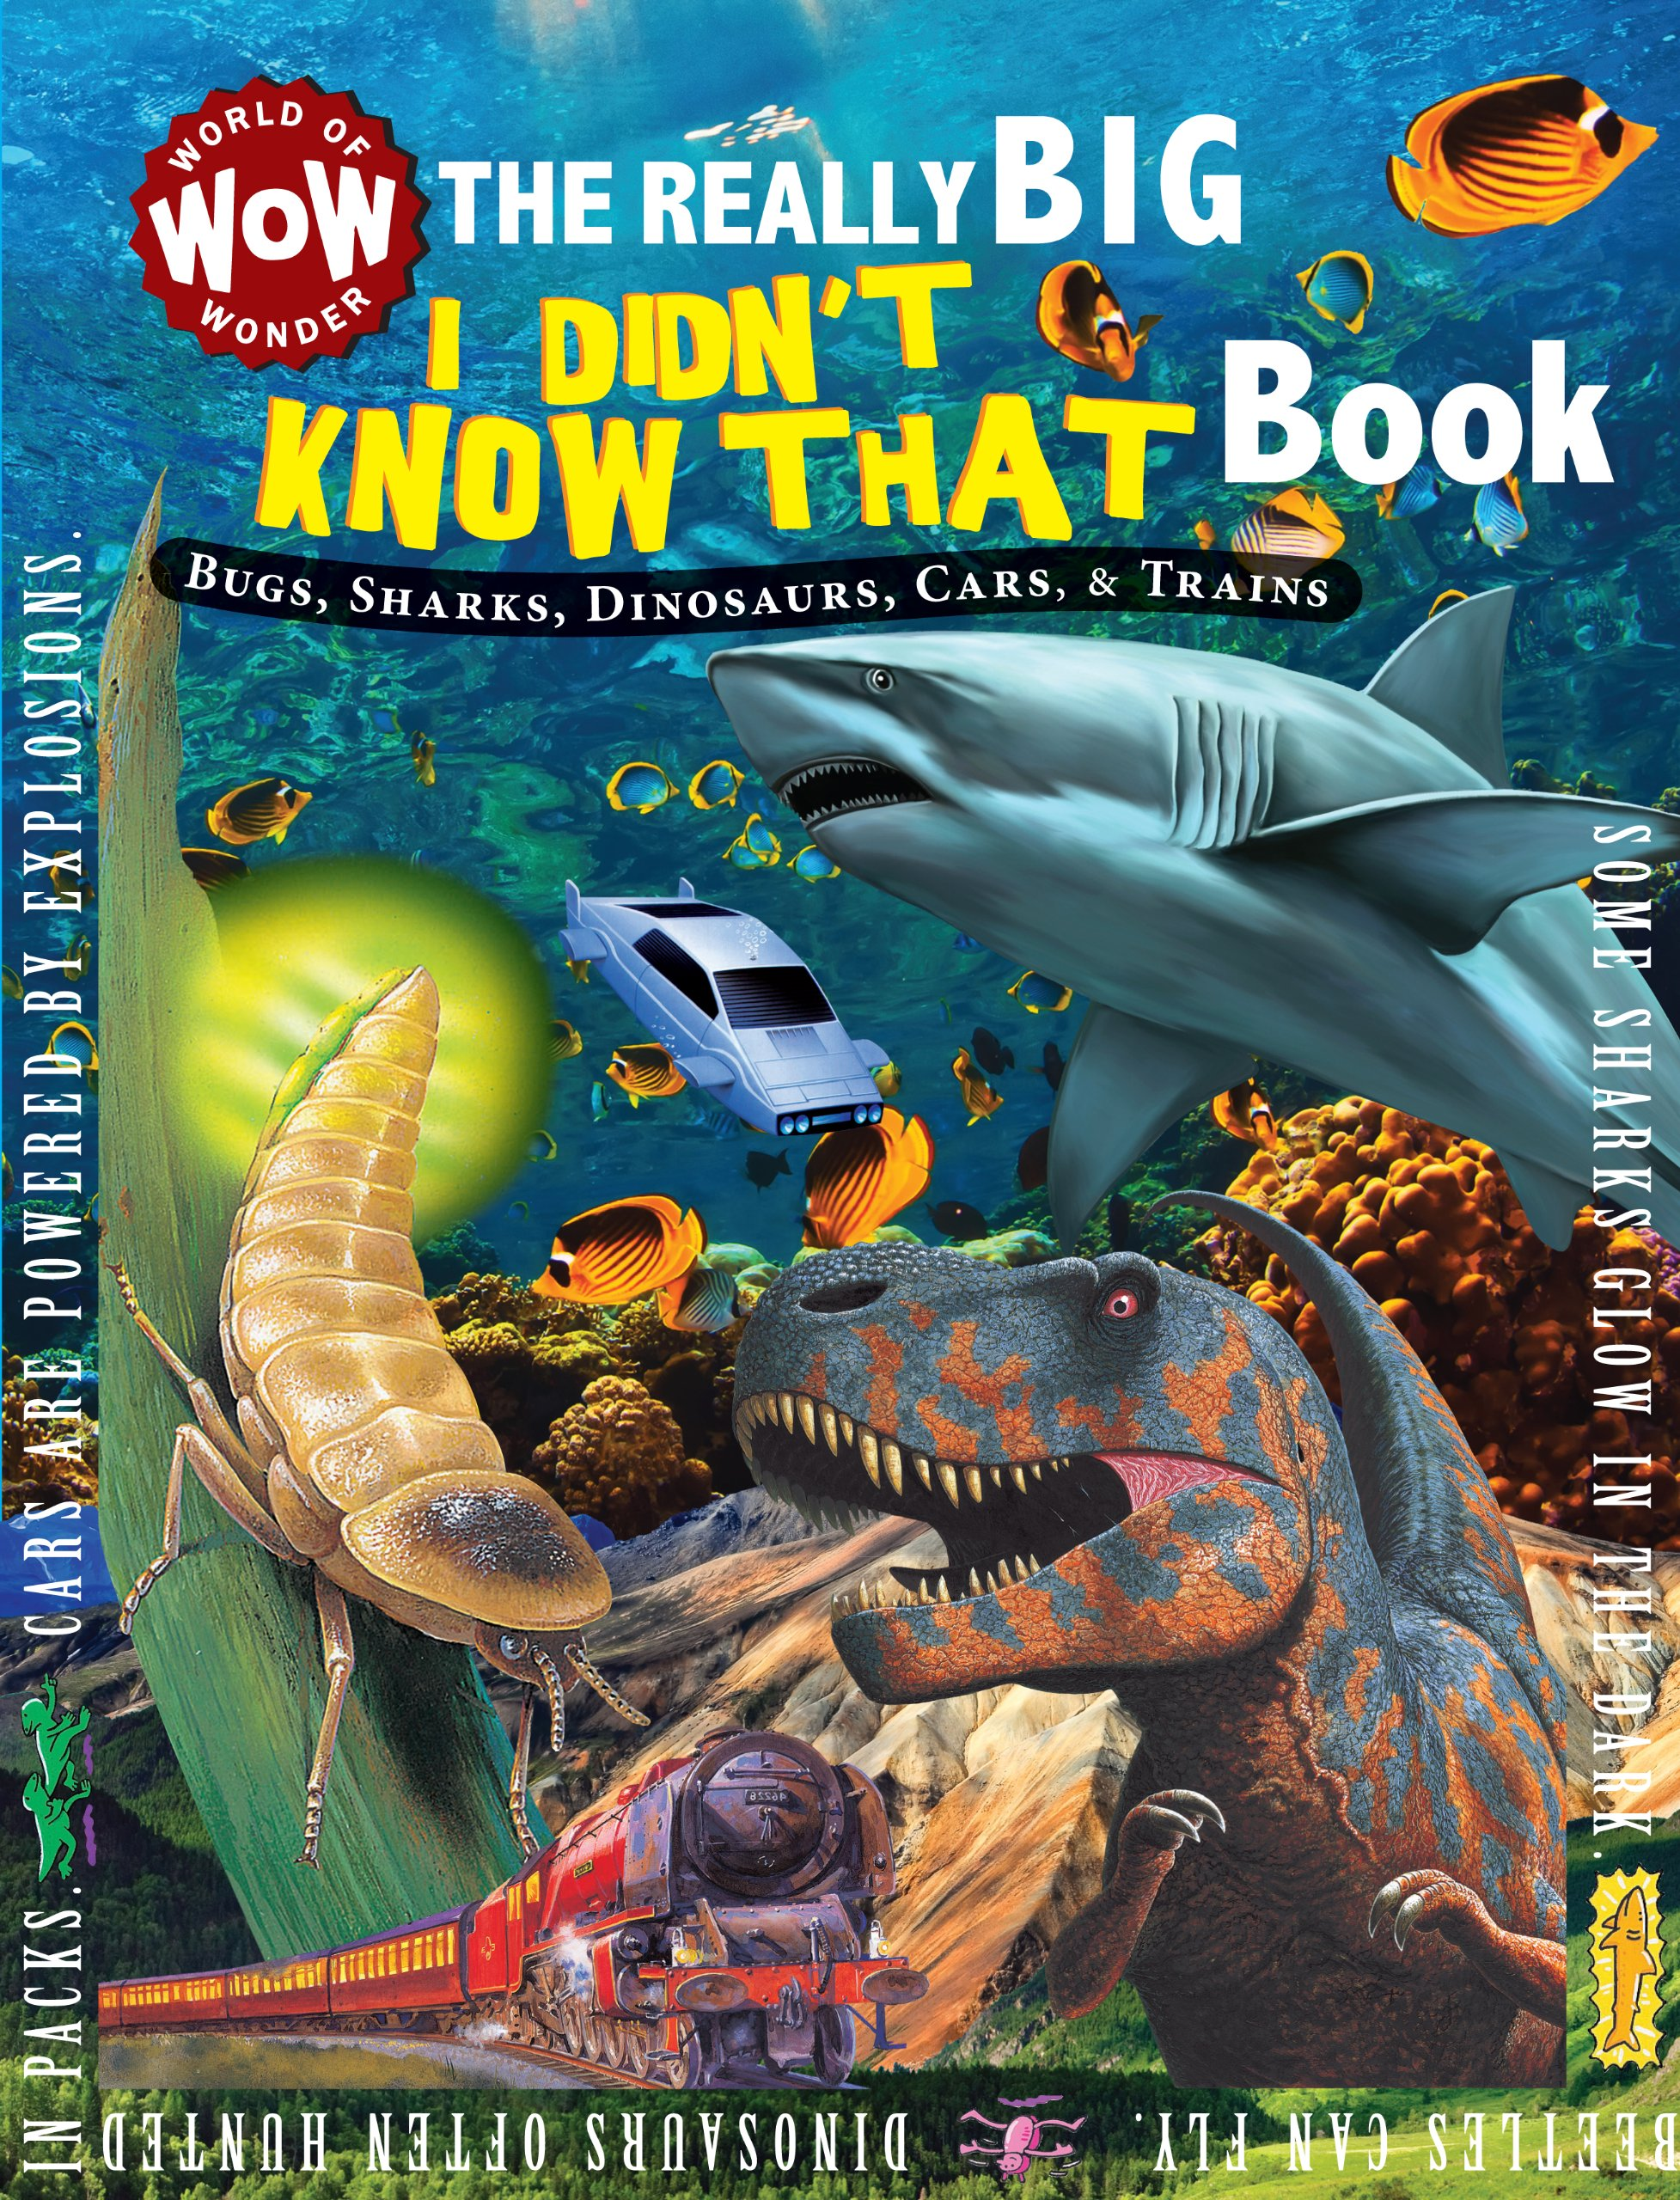 The Really Big I Didn't Know That Book: Bugs, Sharks, Dinosaurs, Cars, & Trains (World of Wonder) PDF